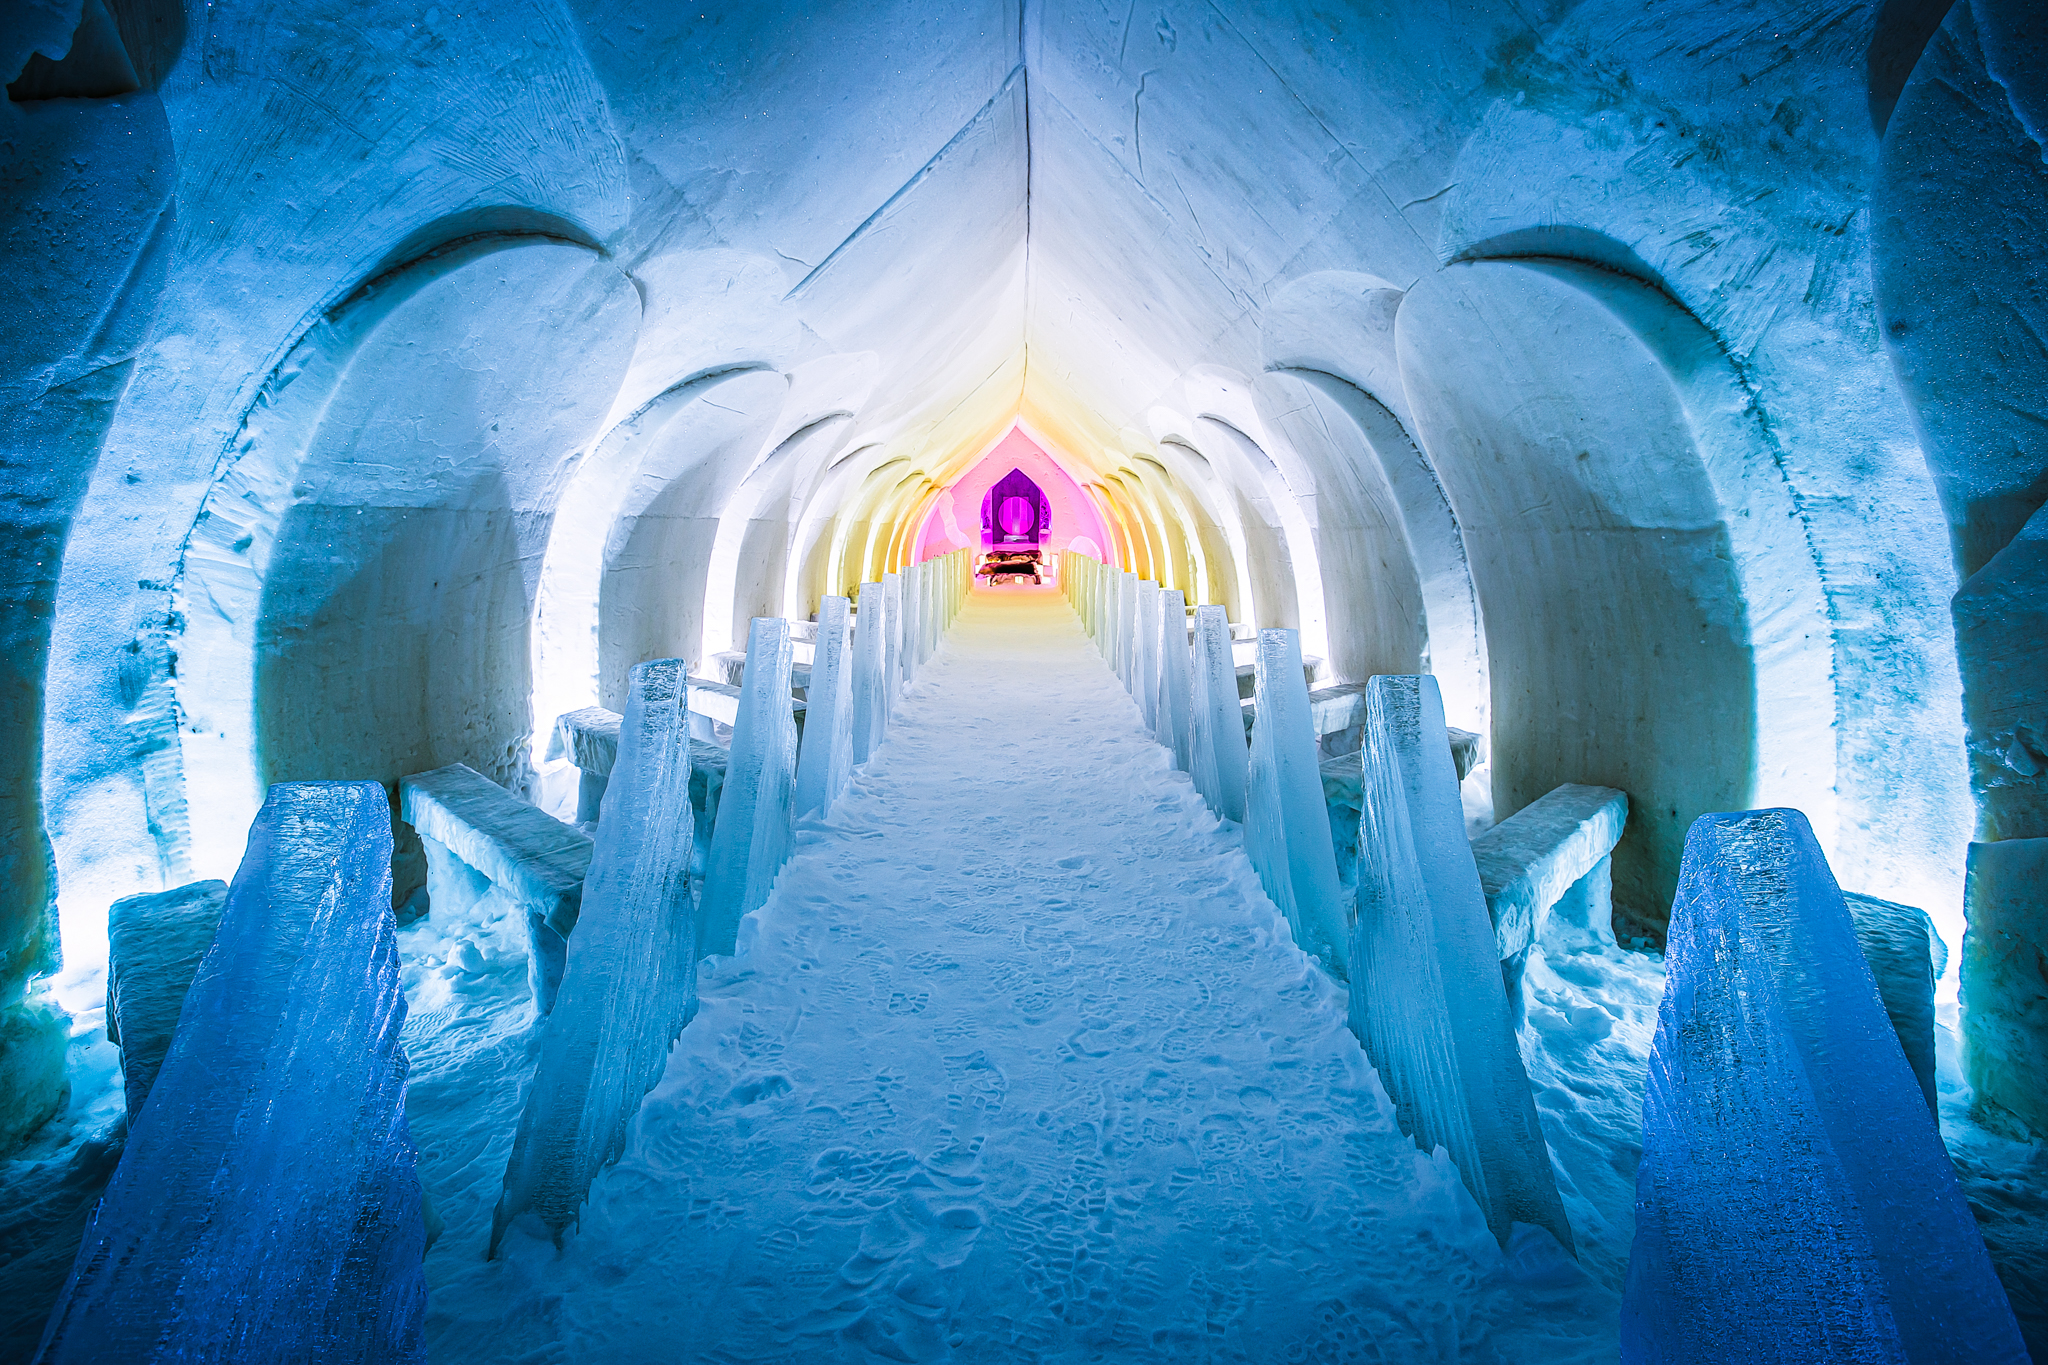 build walk out of snow with harmonious lights